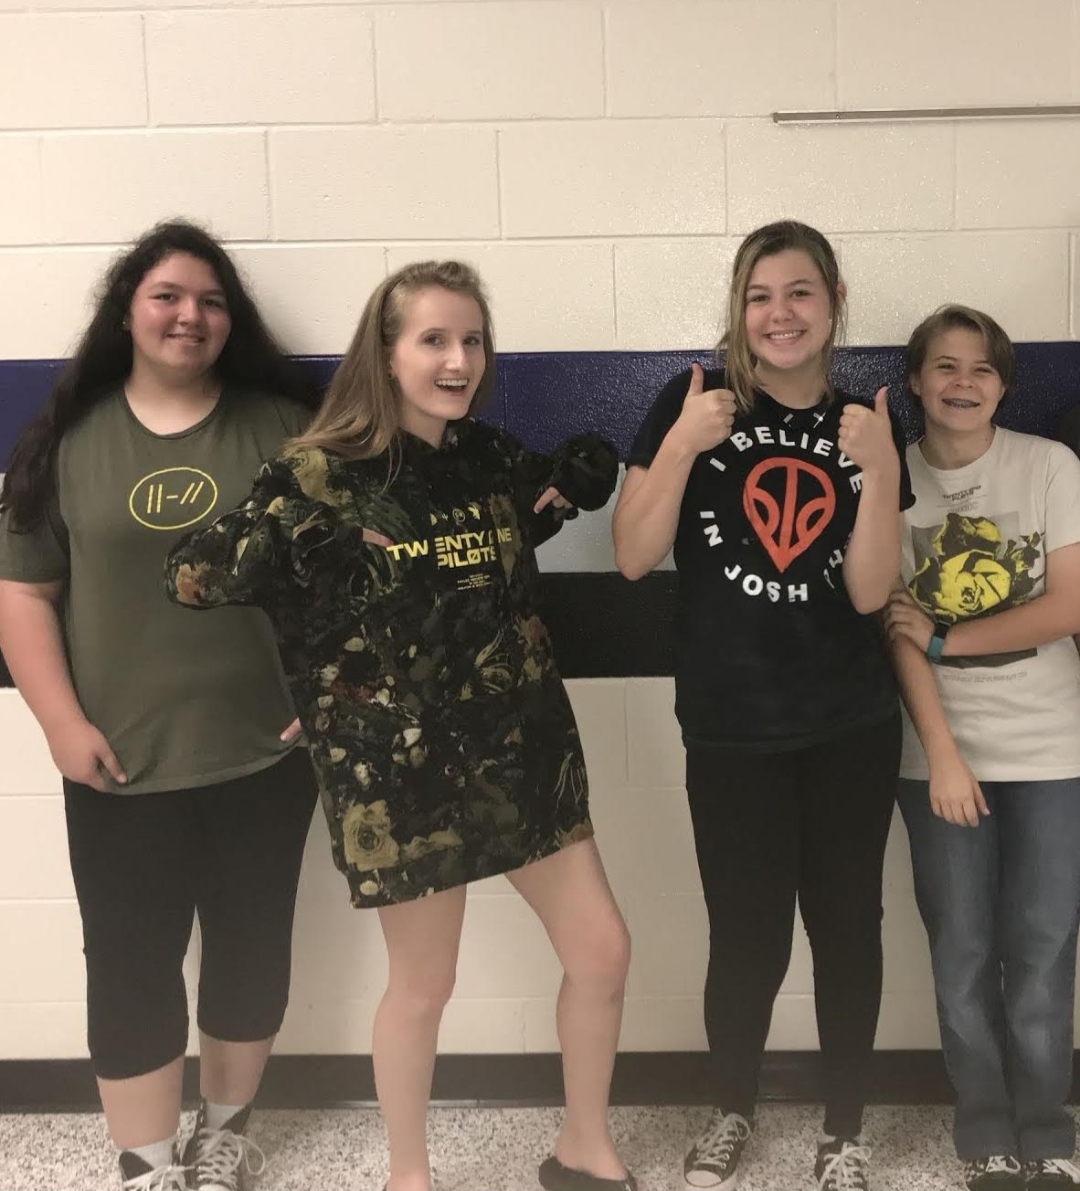 """Local Raiders Andrea Escobar, Cynda Allen (myself), Emily Prior, and Jewel Reynolds are showing their love and support for Twenty One Pilots and their newest album """"Trench."""